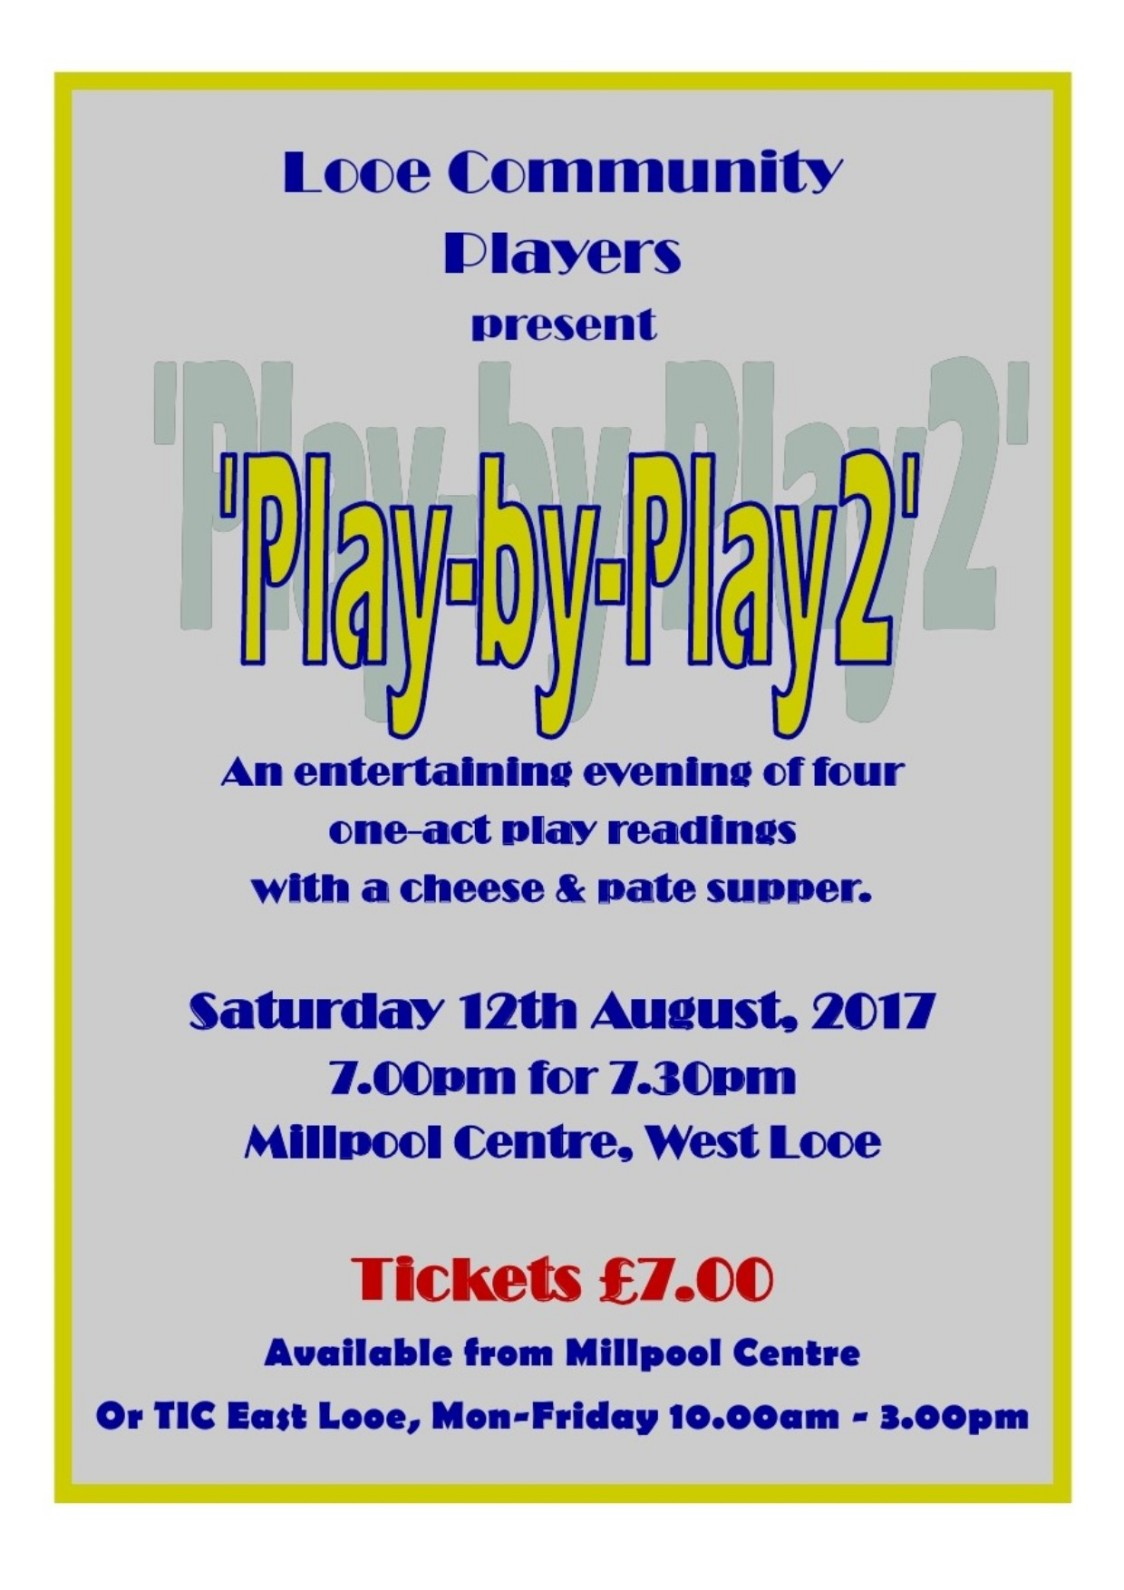 Looe Community Players Sat 12th Aug 2017